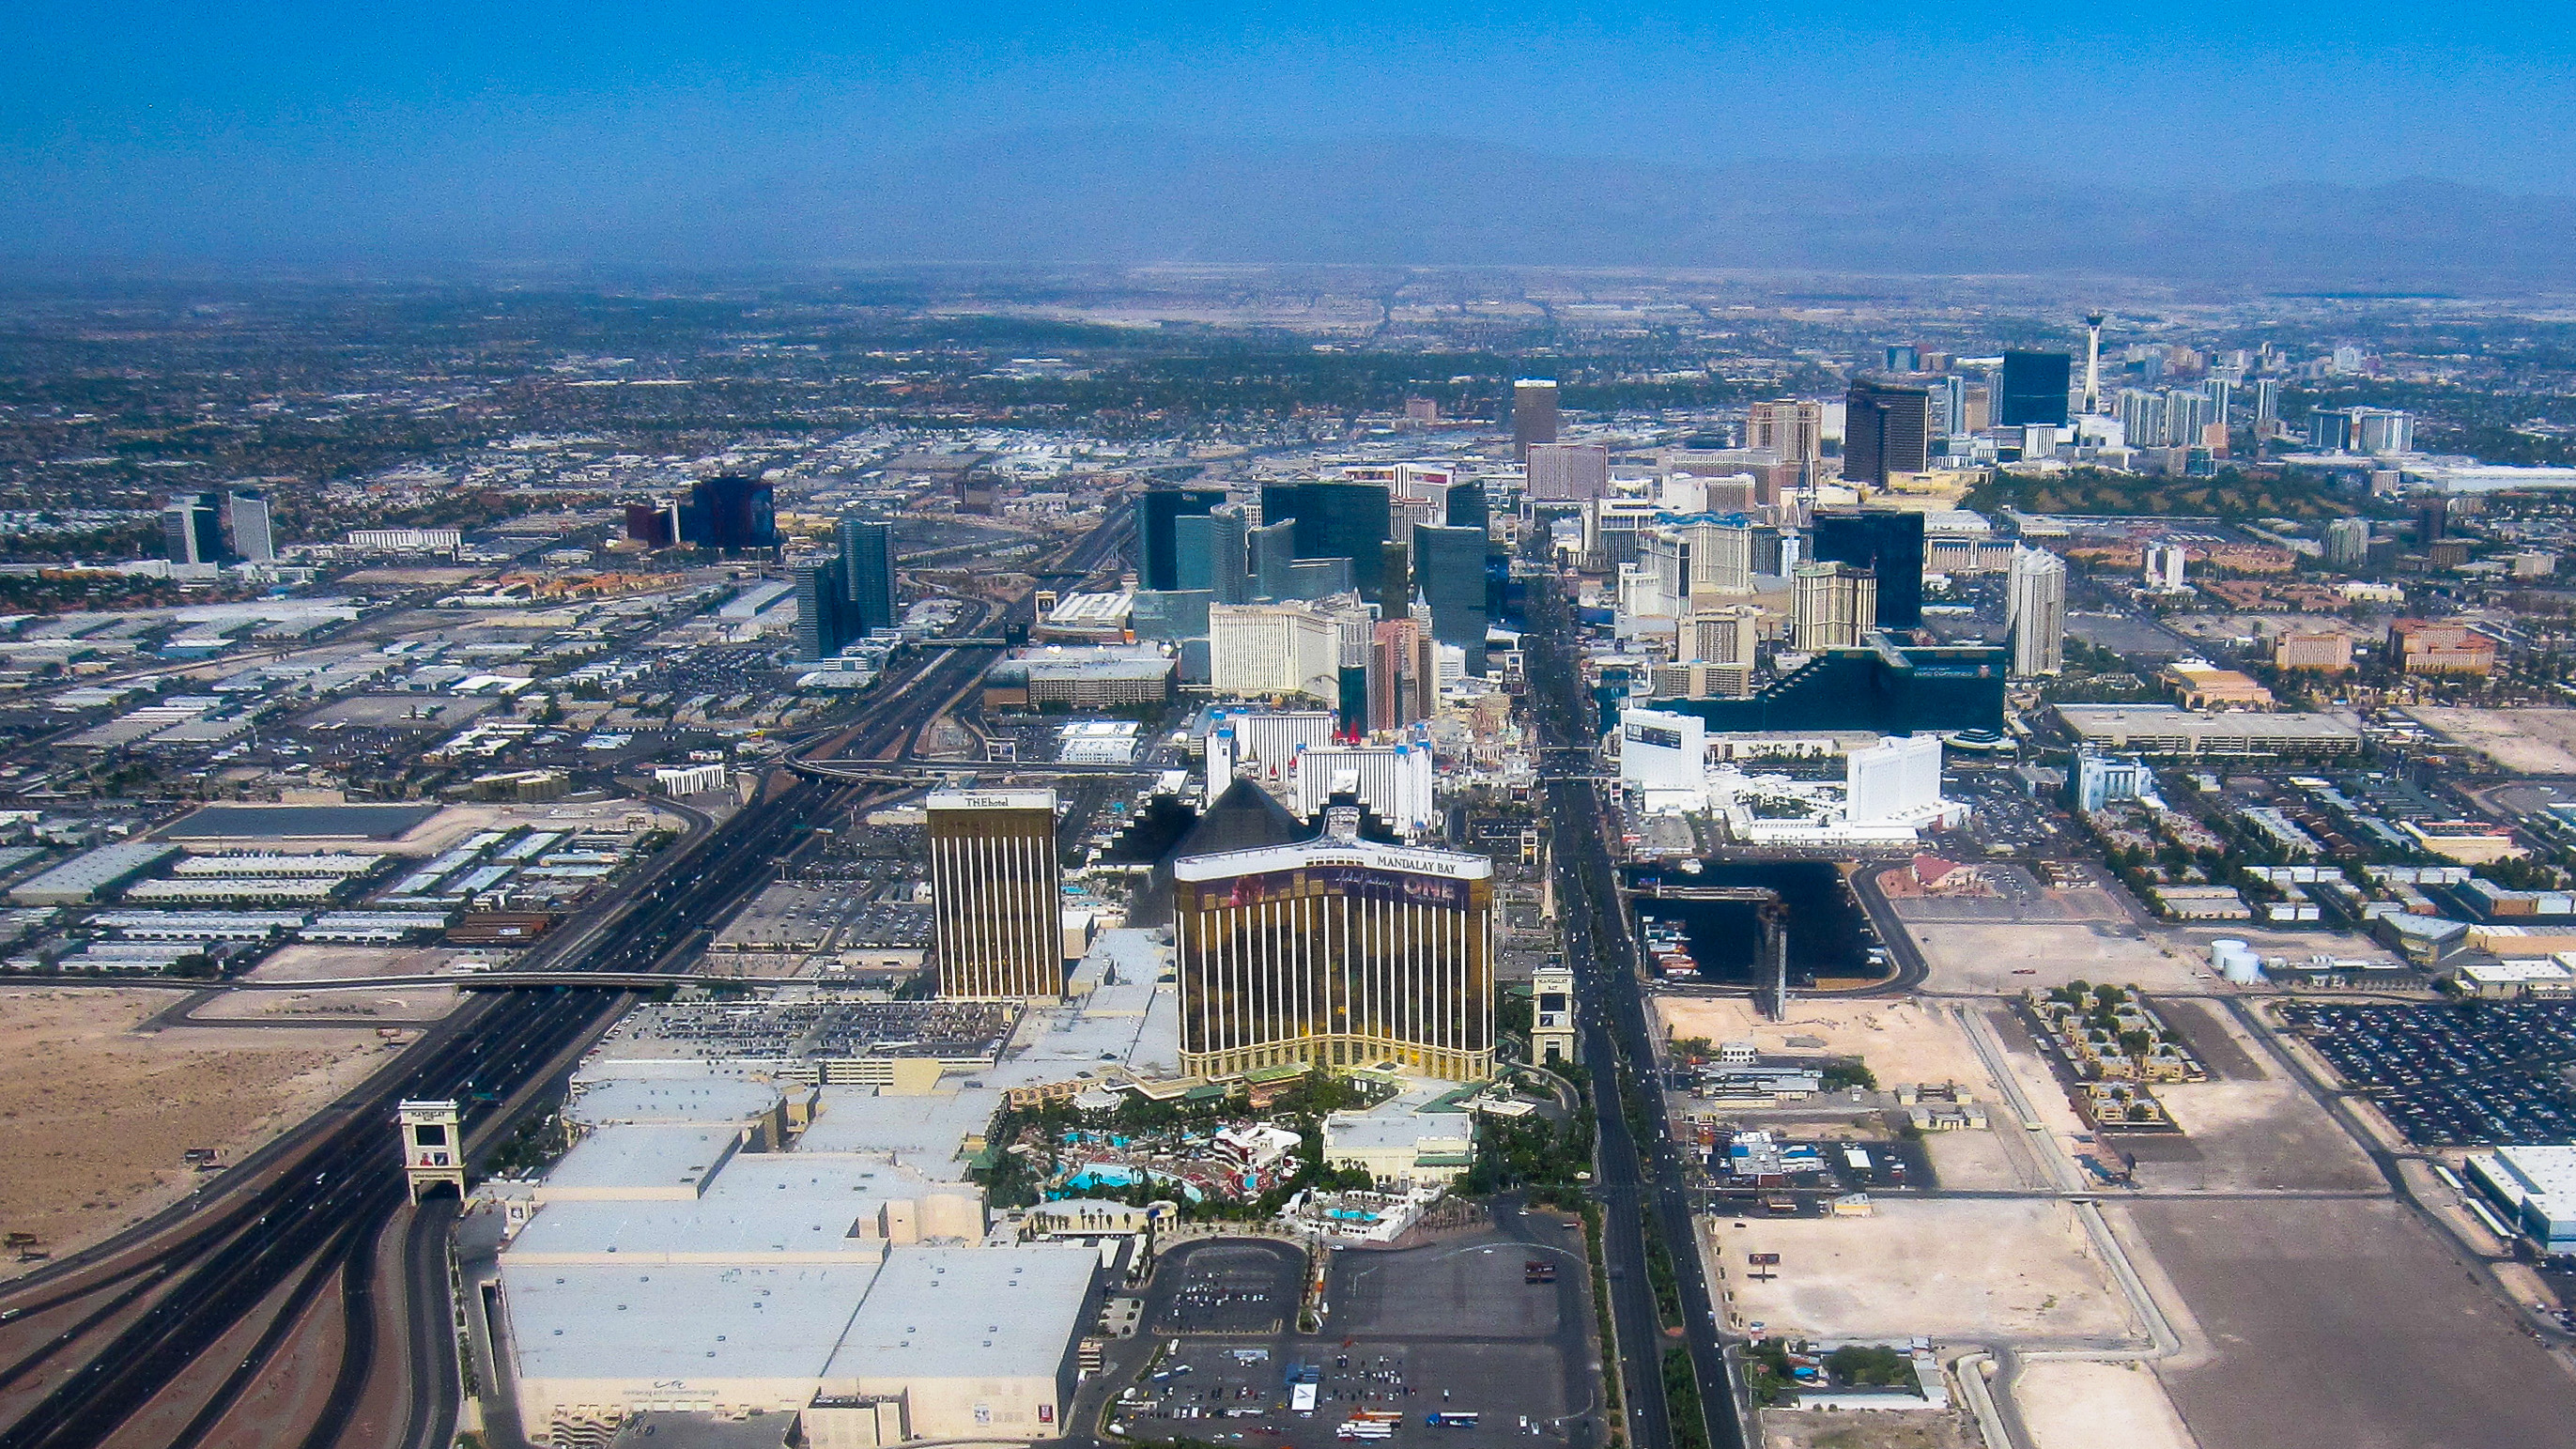 Las Aerial vegas strip view